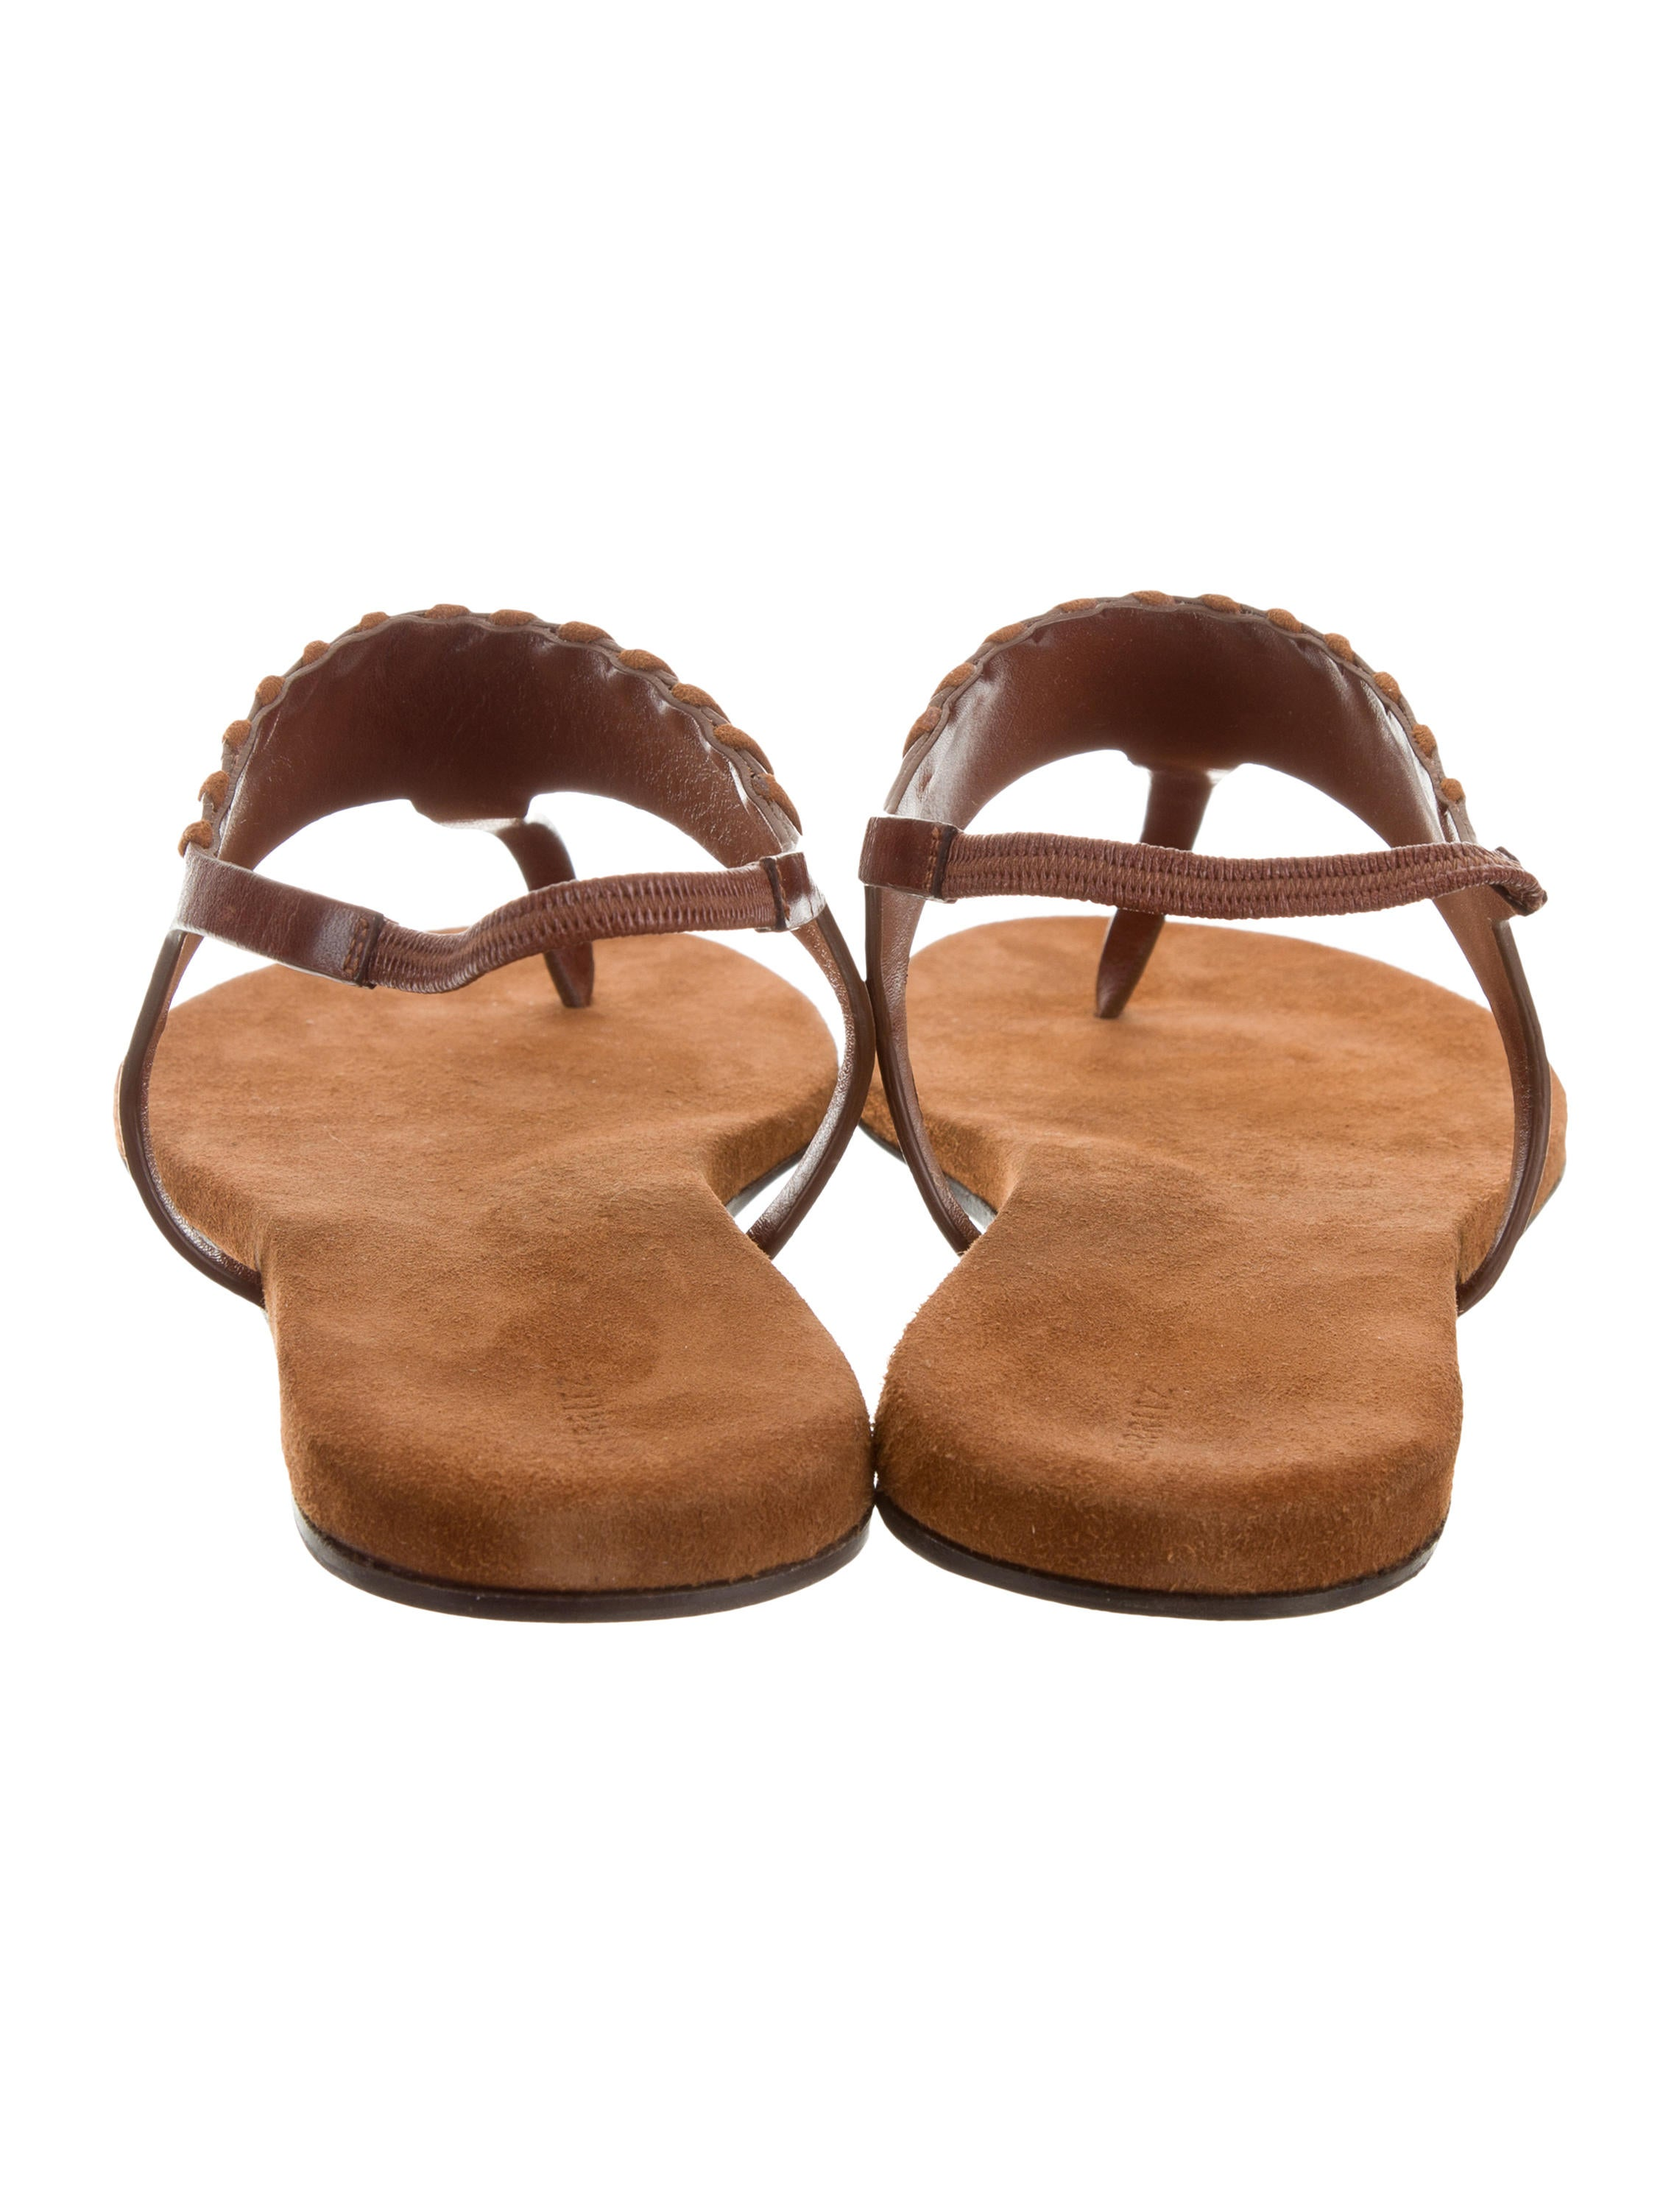 buy for sale Carritz Salome Leather Sandals w/ Tags cheap view Nw8OM